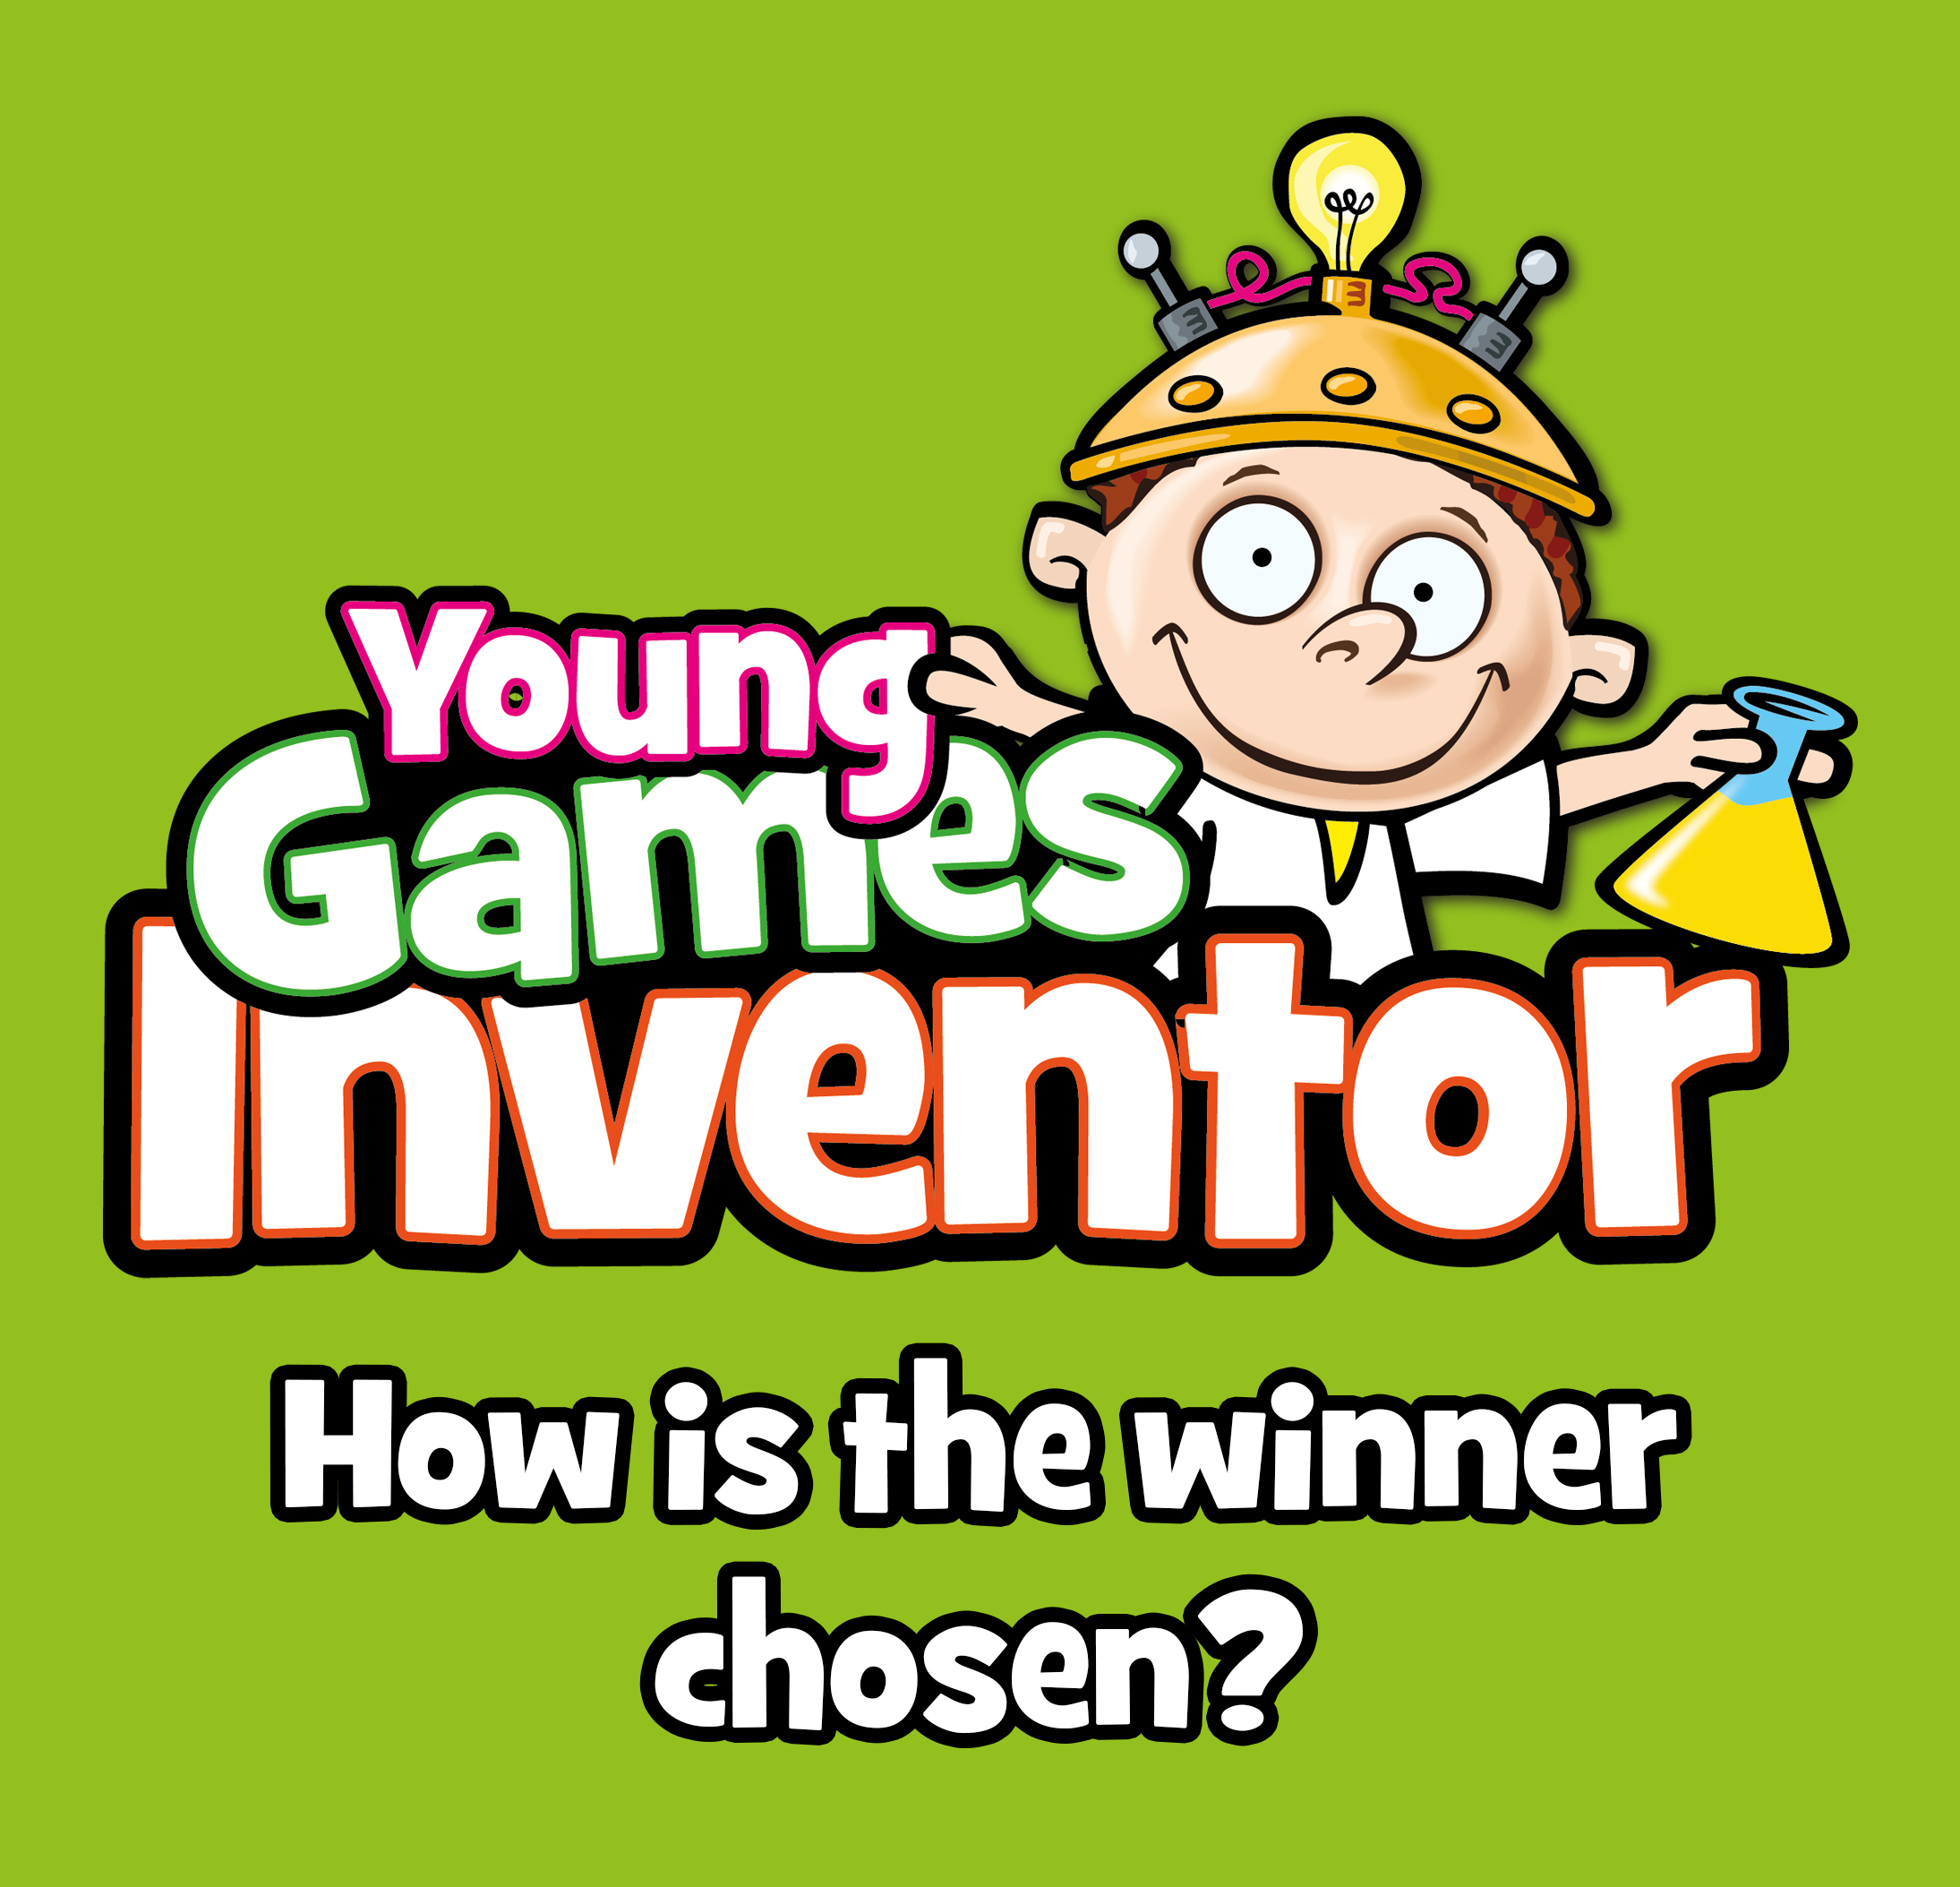 Cash prize to the winning inventor clipart clipart royalty free stock How is the Young Games Inventor of the Year chosen? | BrainBox clipart royalty free stock